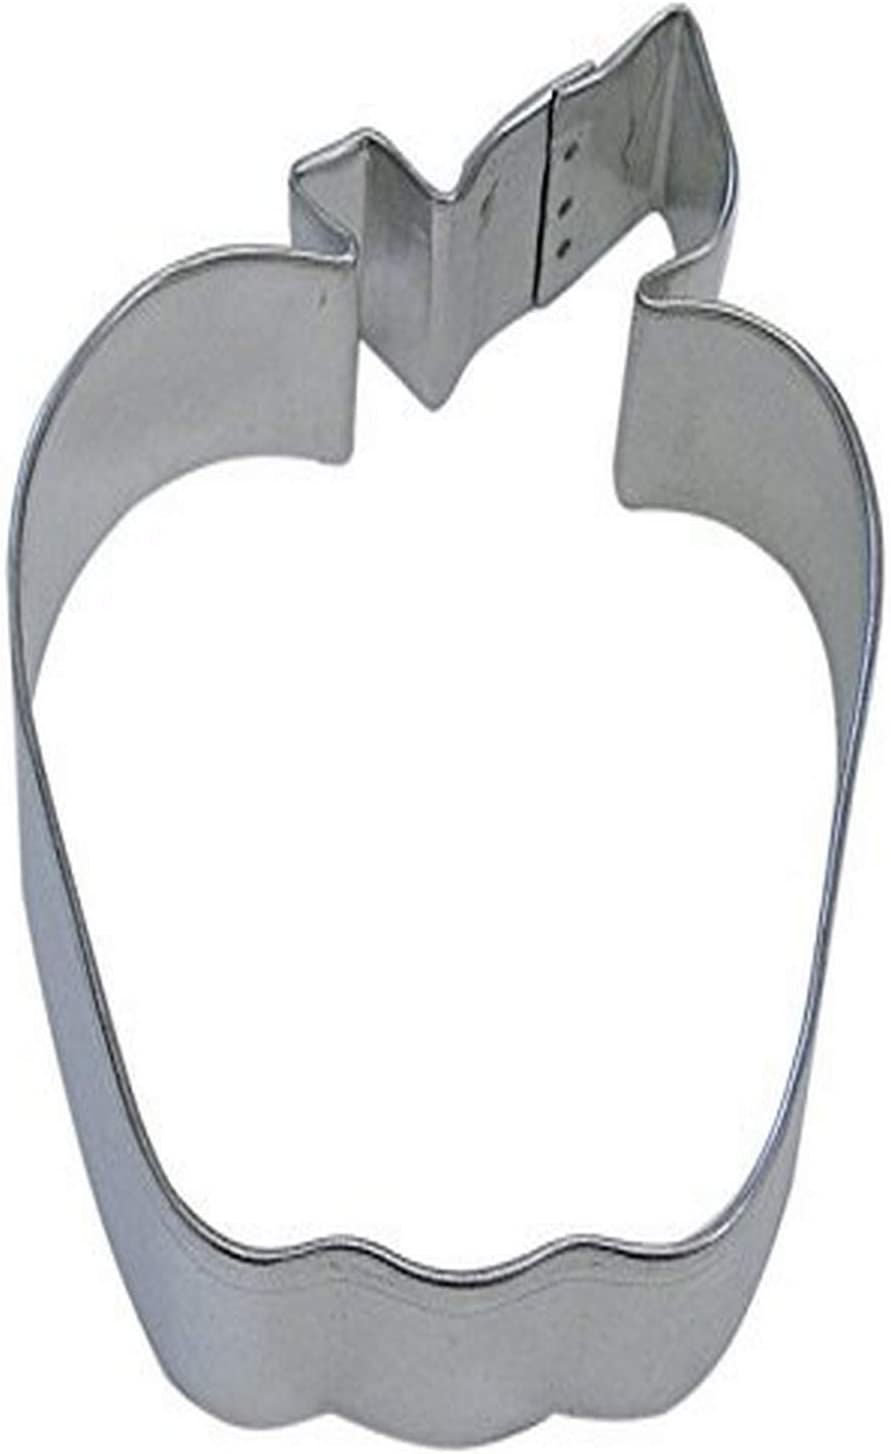 "R&M Apple 4"" Cookie Cutter in Durable, Economical, Tinplated Steel"